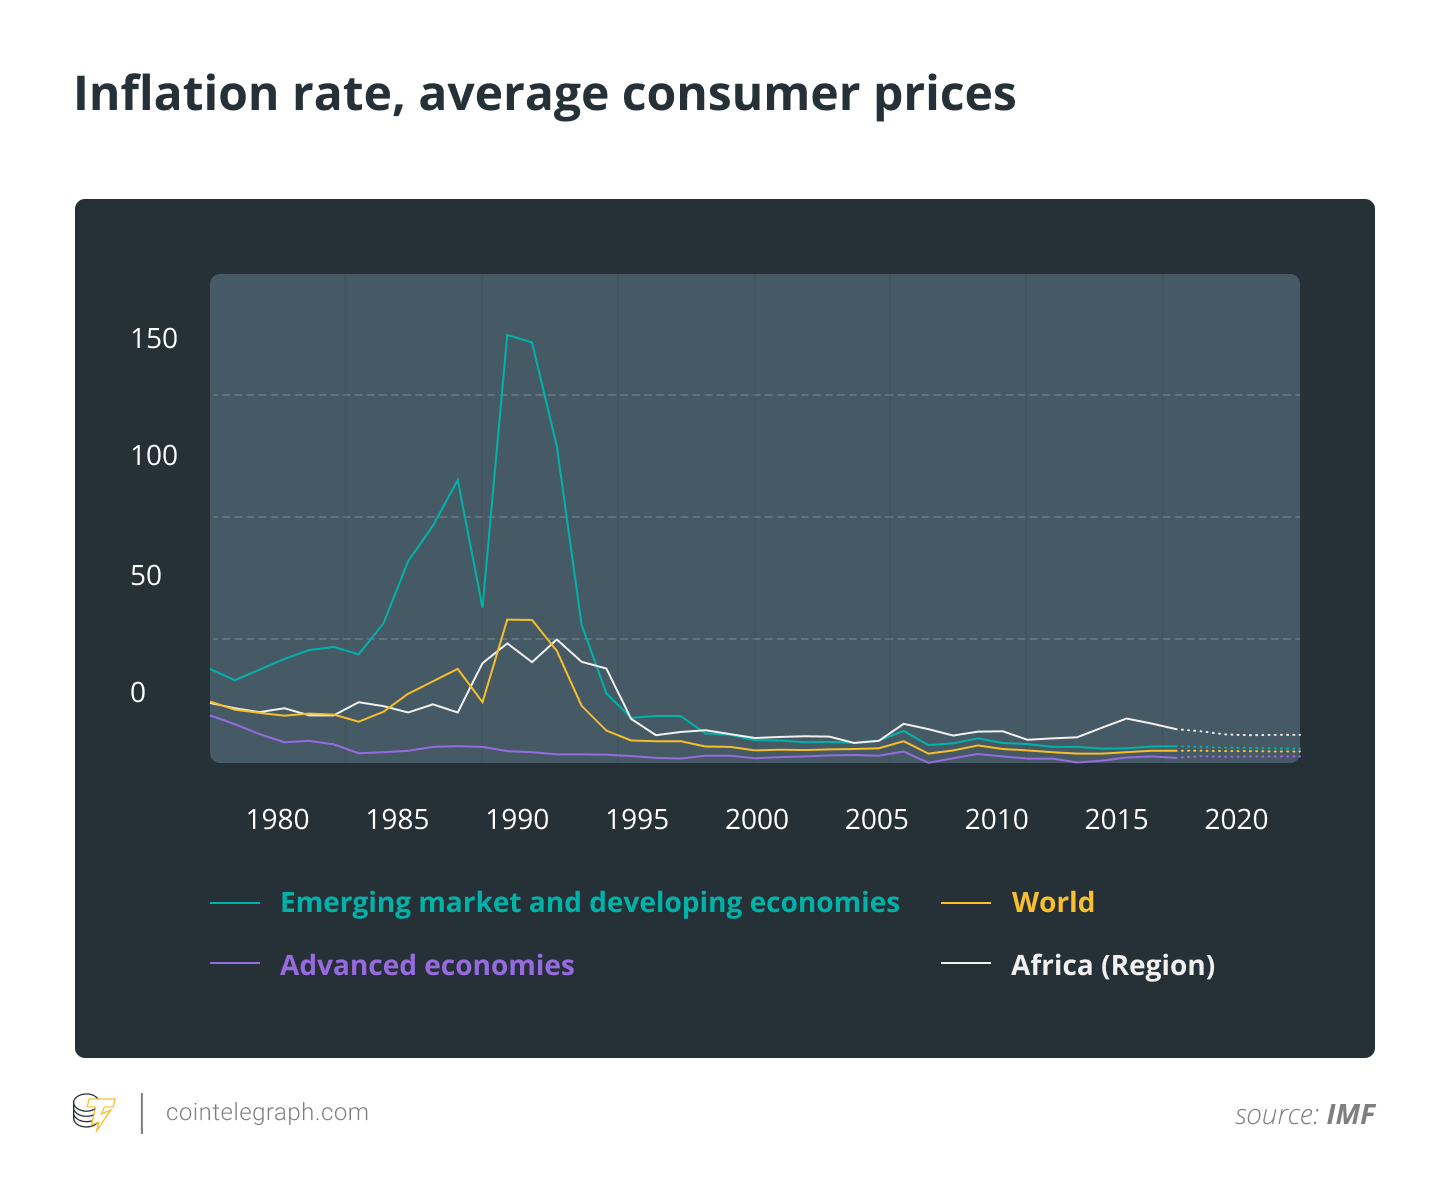 Inflation rate, average consumer prices